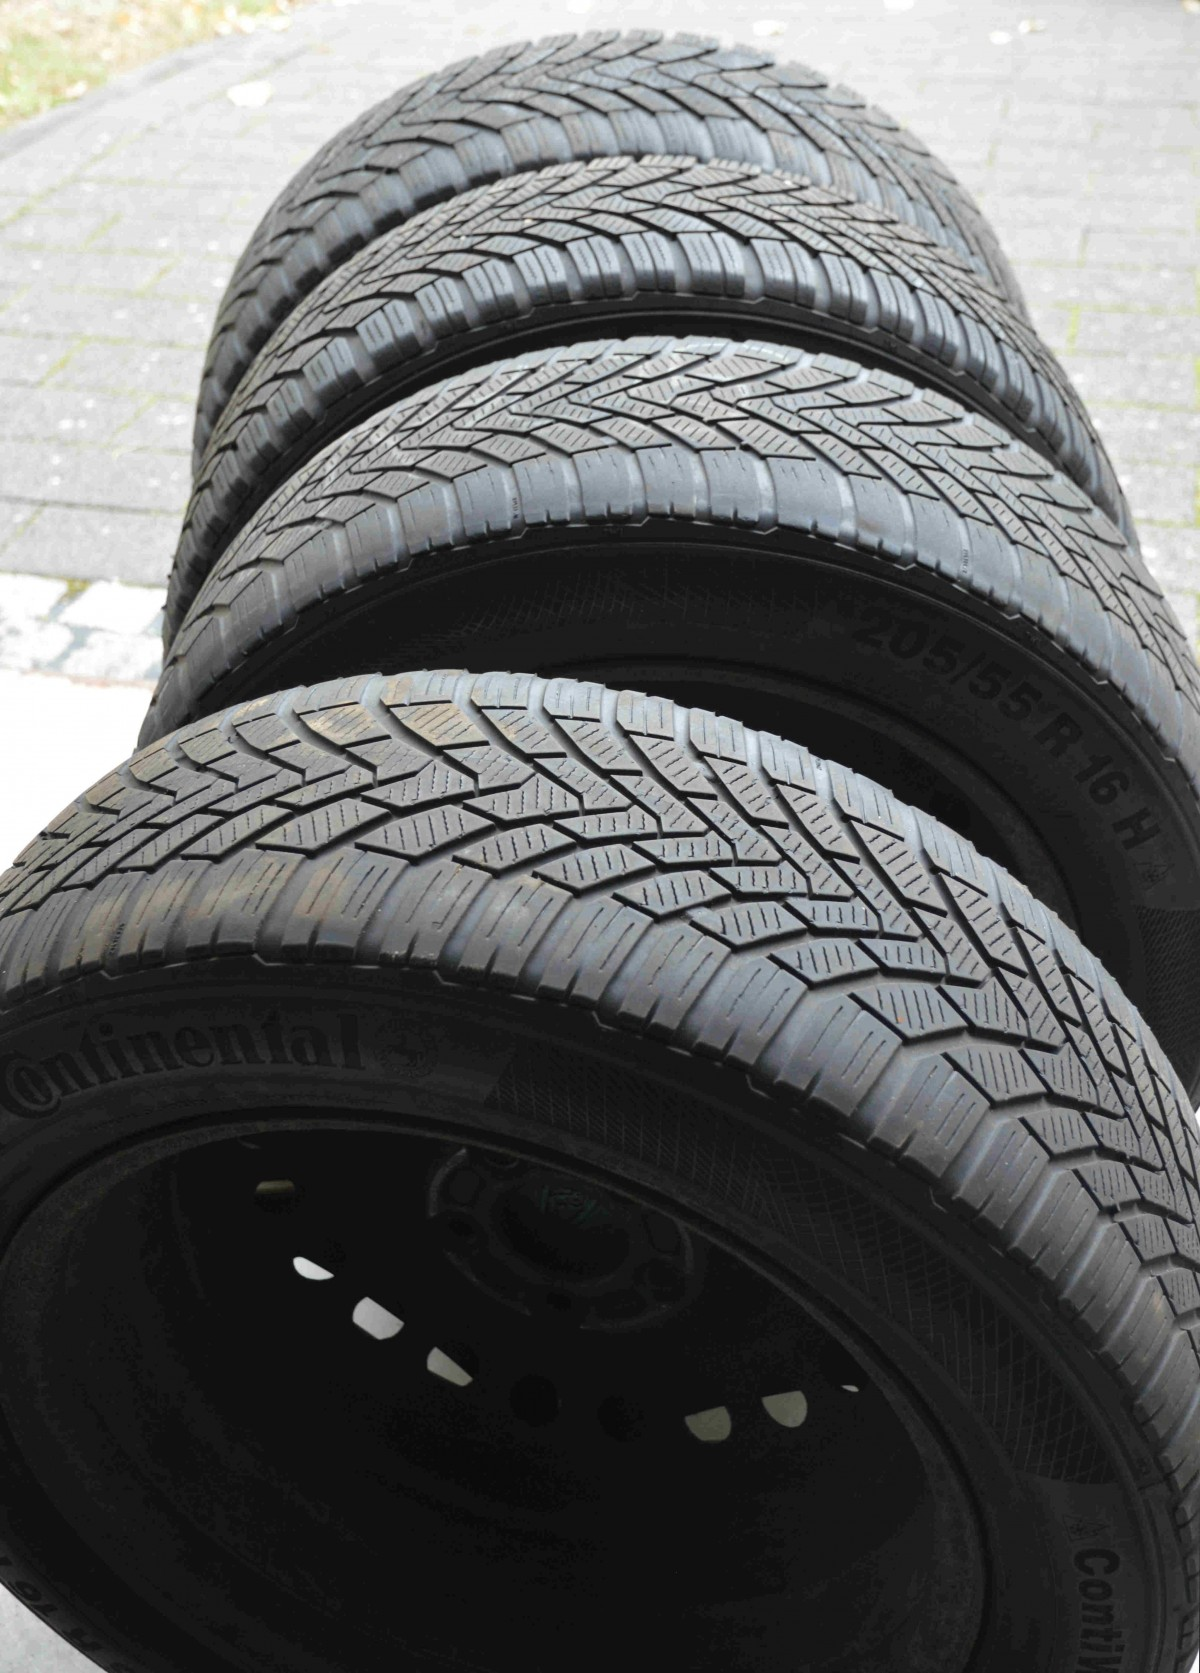 Learning the art Of selecting tires